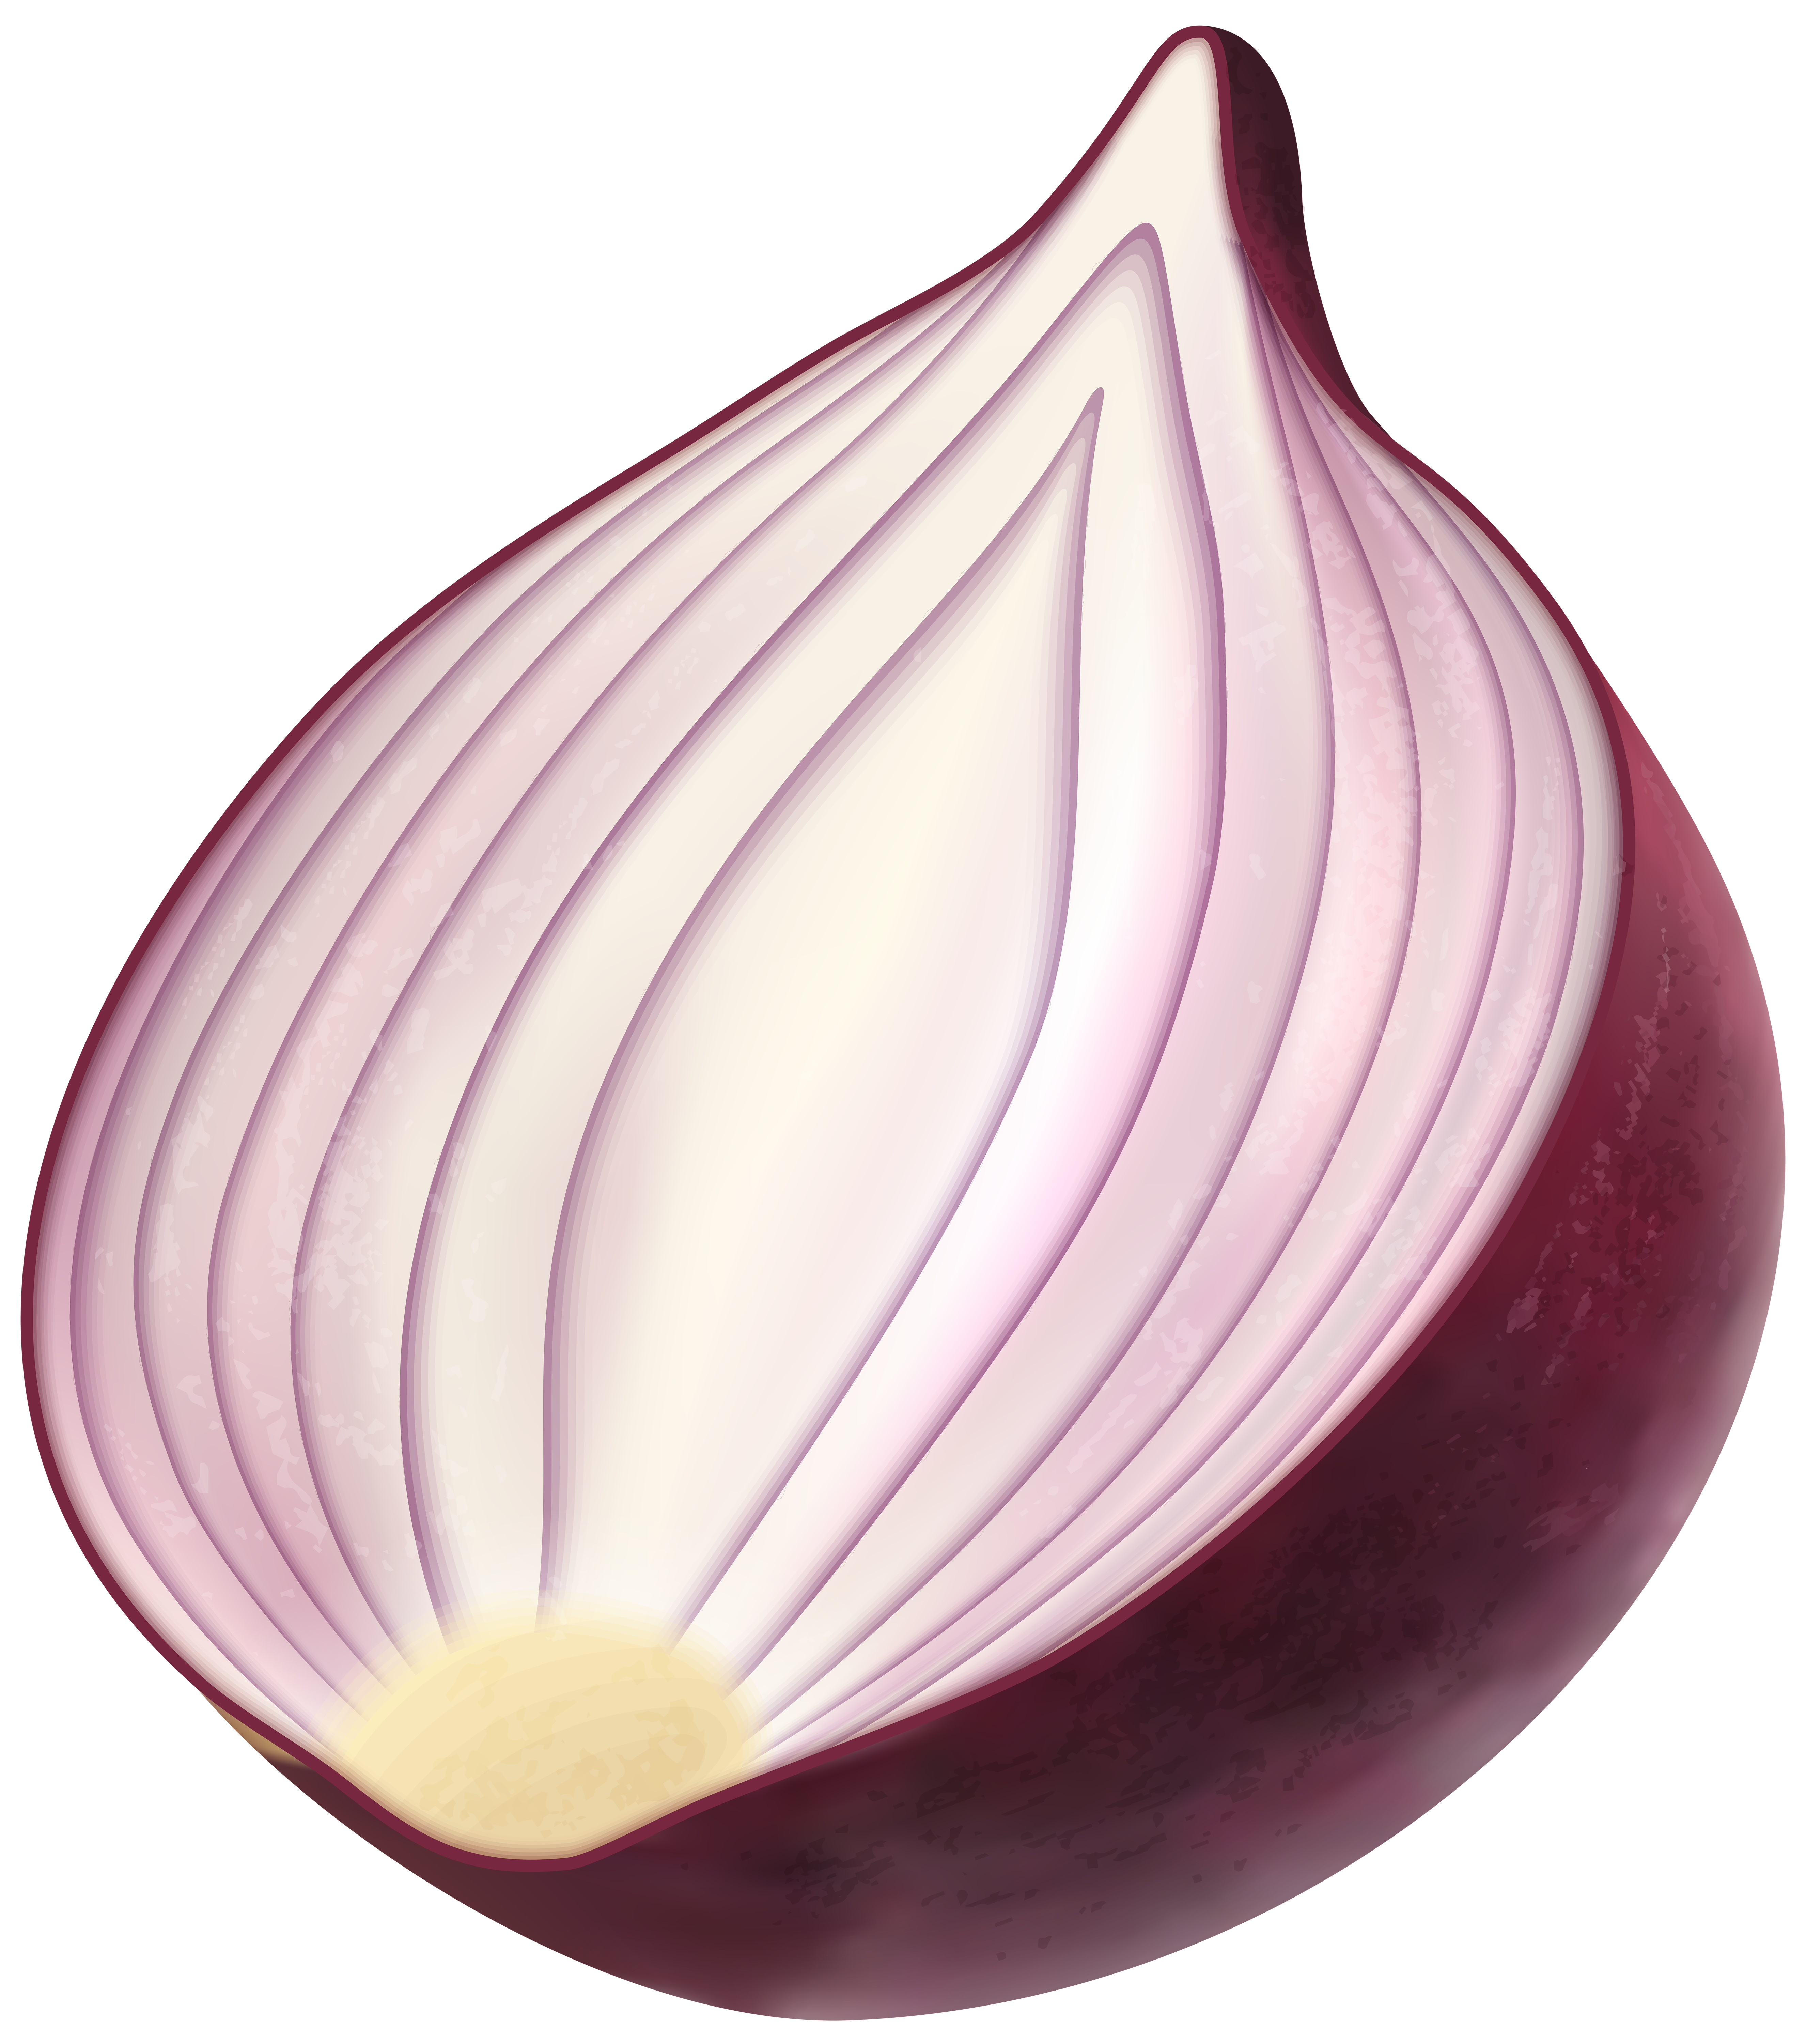 Png clip art image. Onion clipart red onion